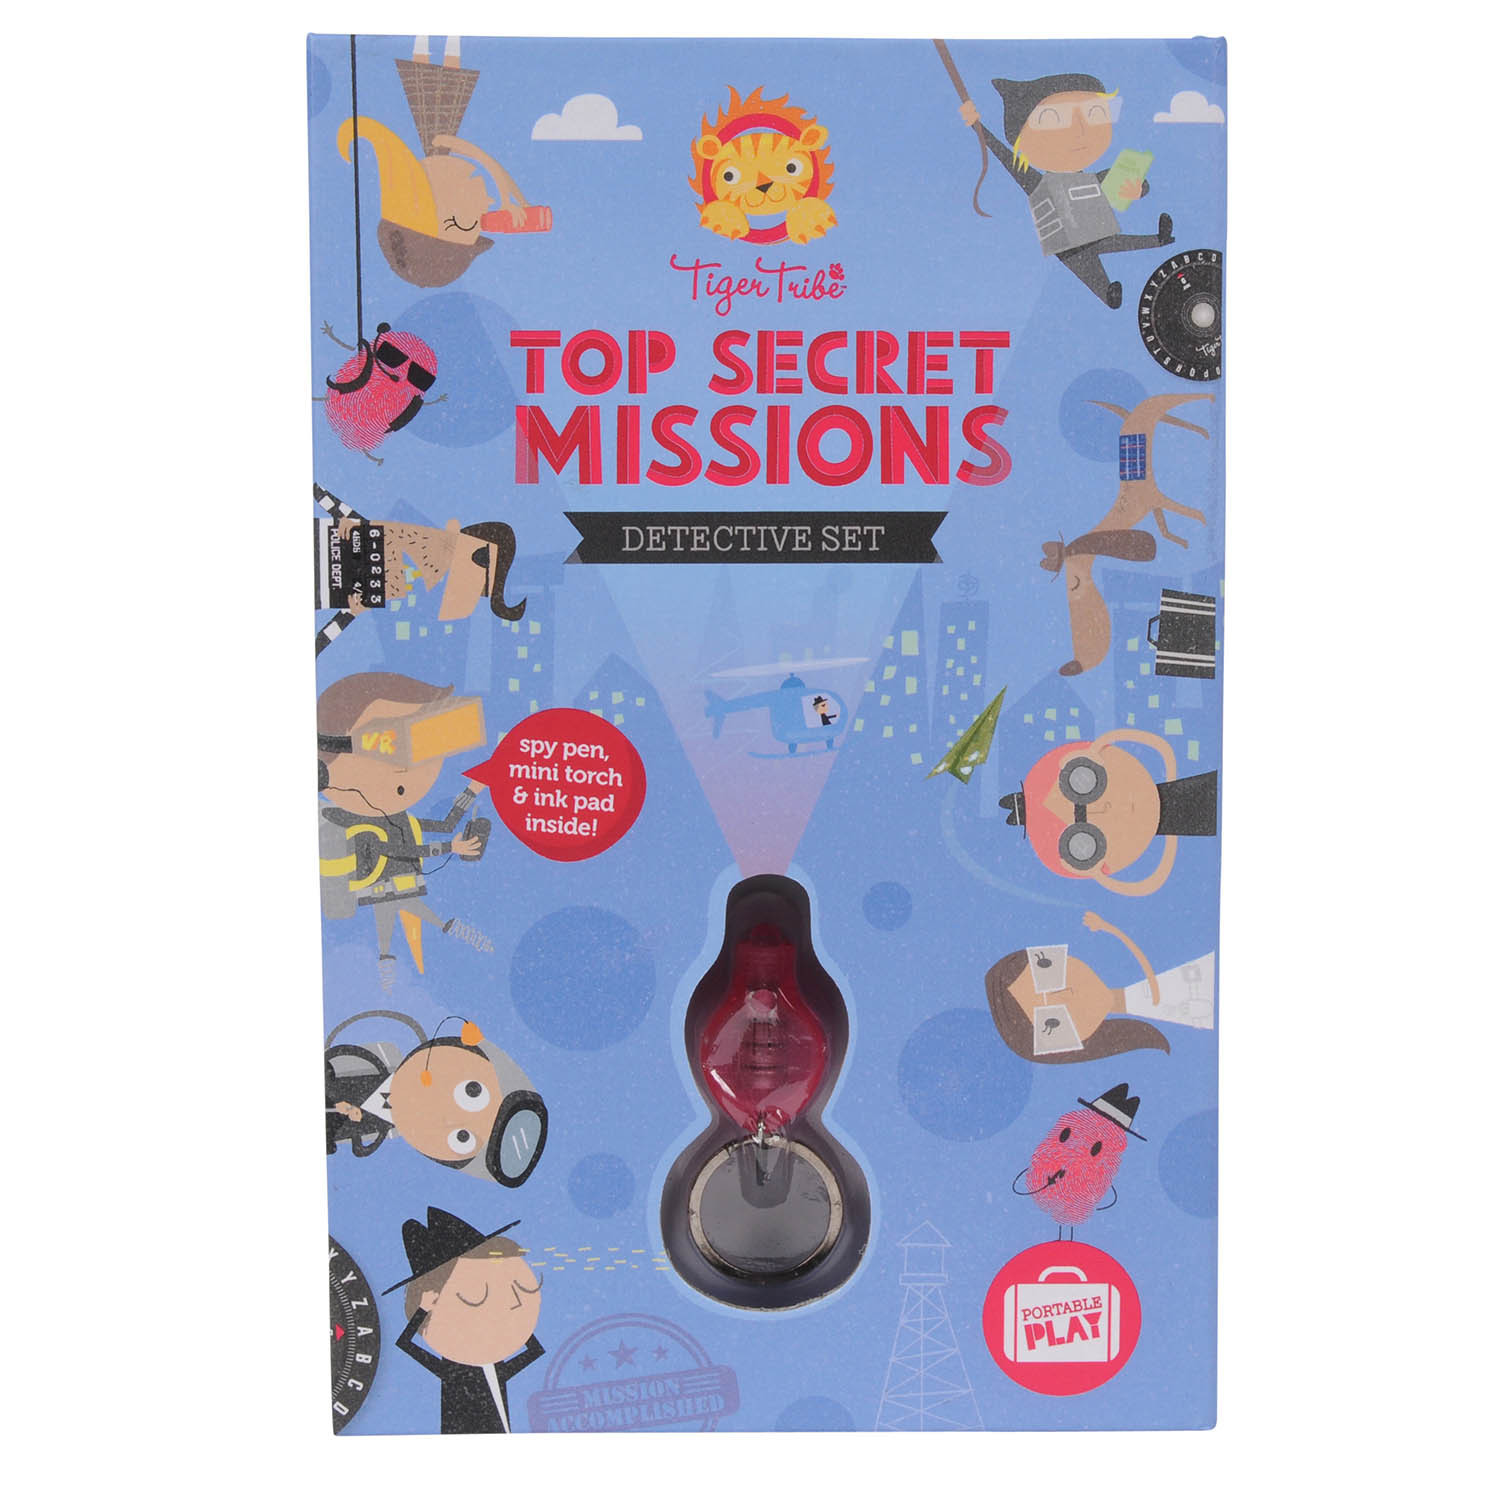 Top Secret Mission - Detective Set